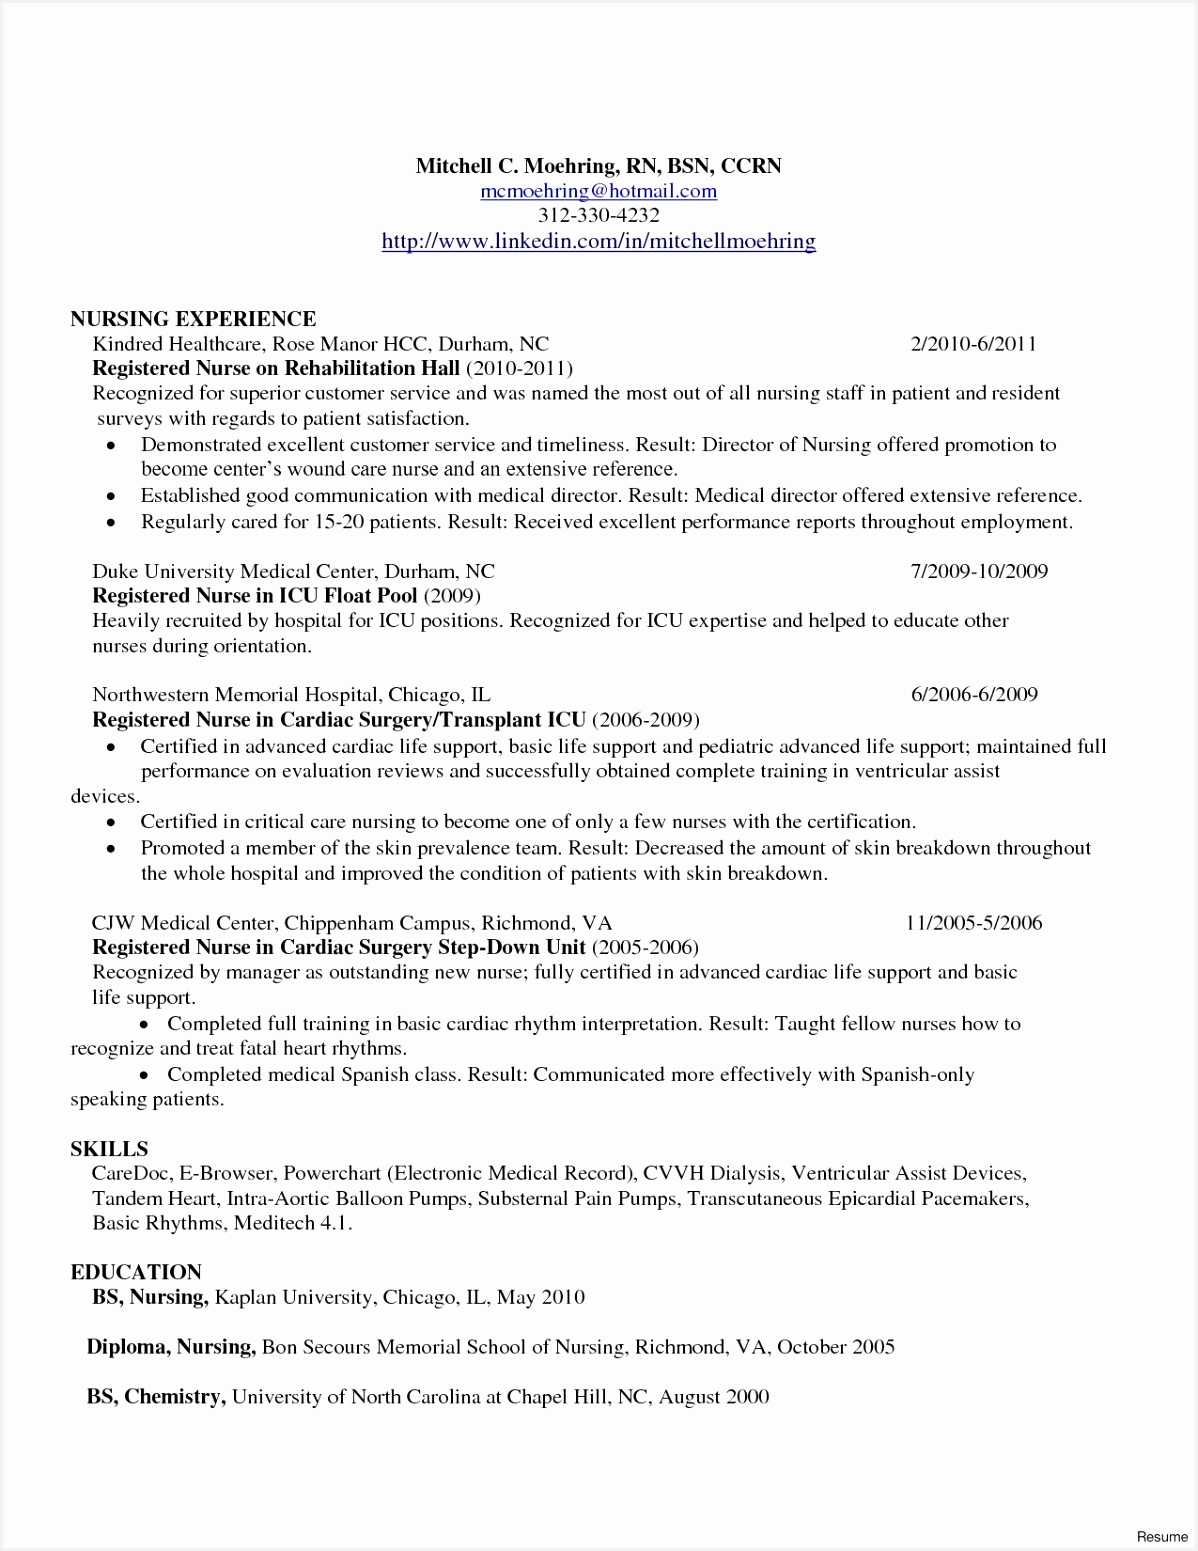 Elegant New Nurse Resume Awesome Nurse Resume 0d Wallpapers 42 15511198umguq